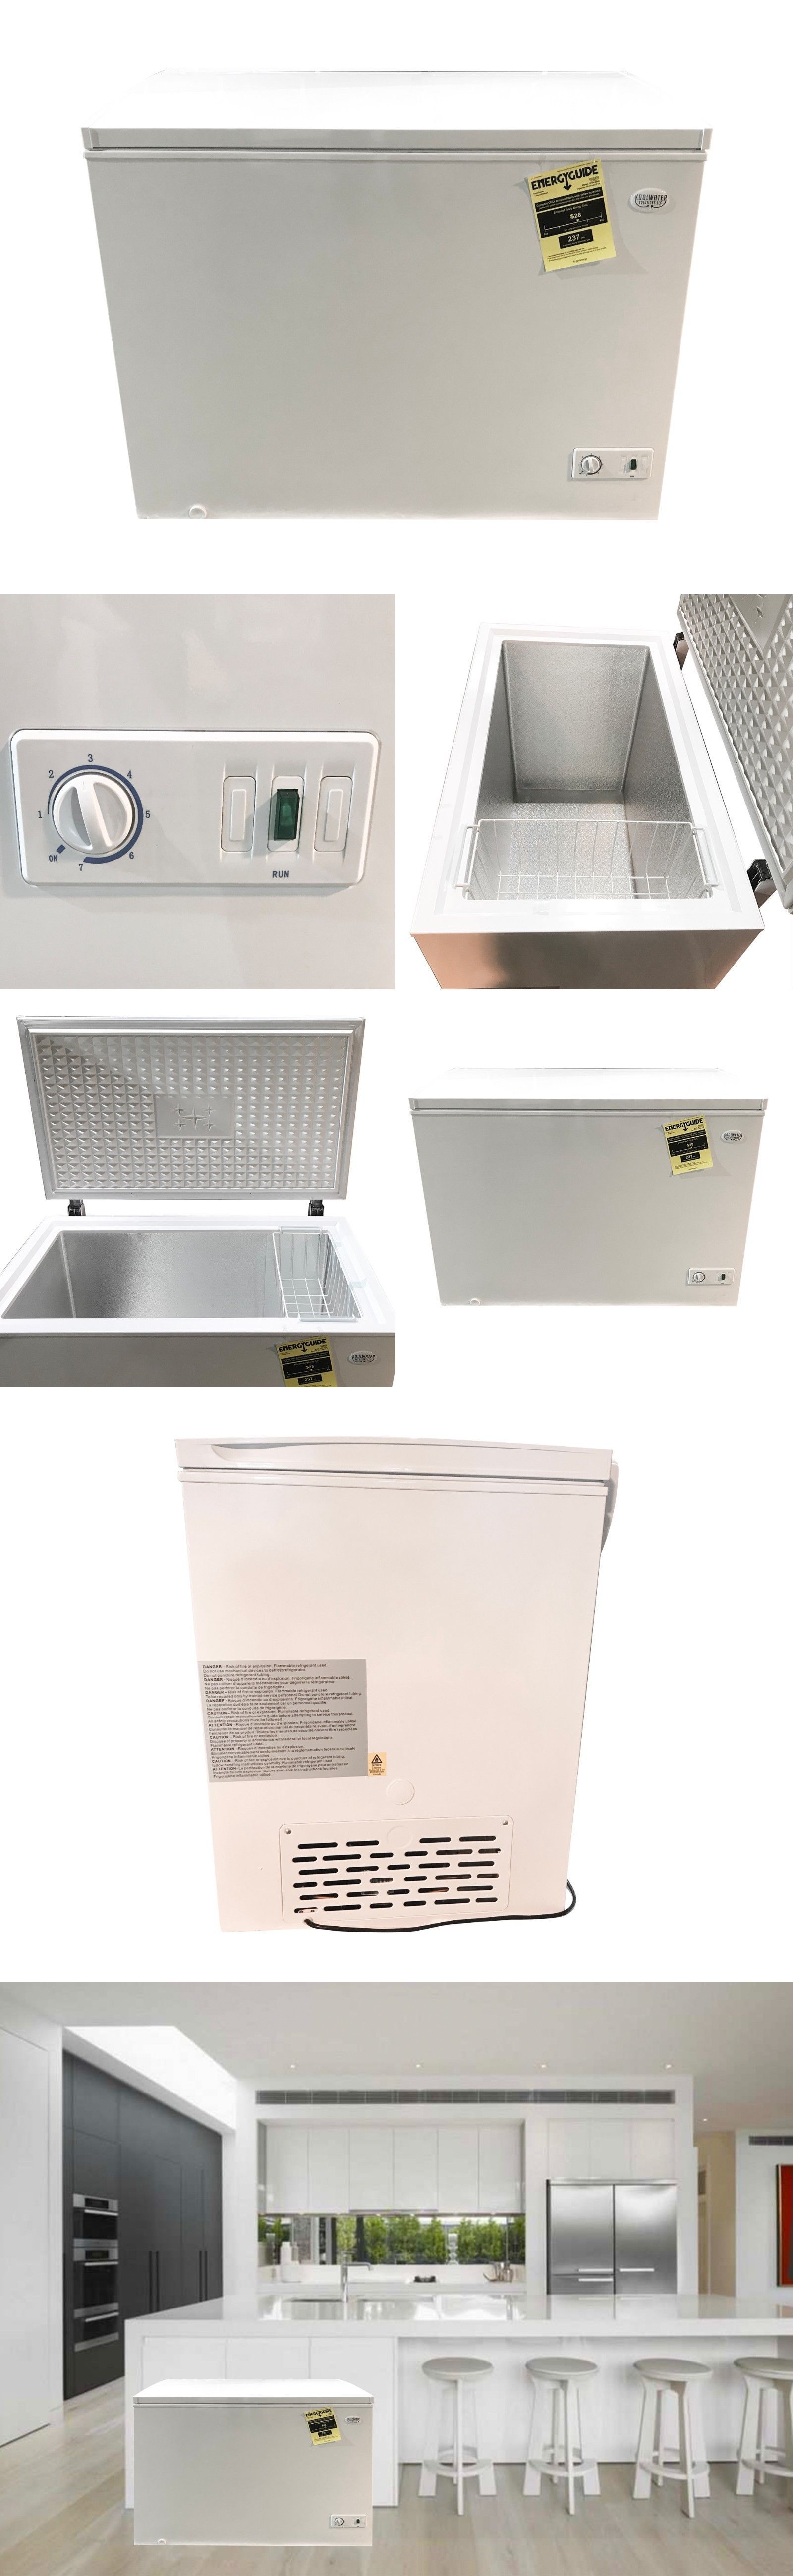 Upright And Chest Freezers 71260 Kool Water Solutions 10 Cu Ft